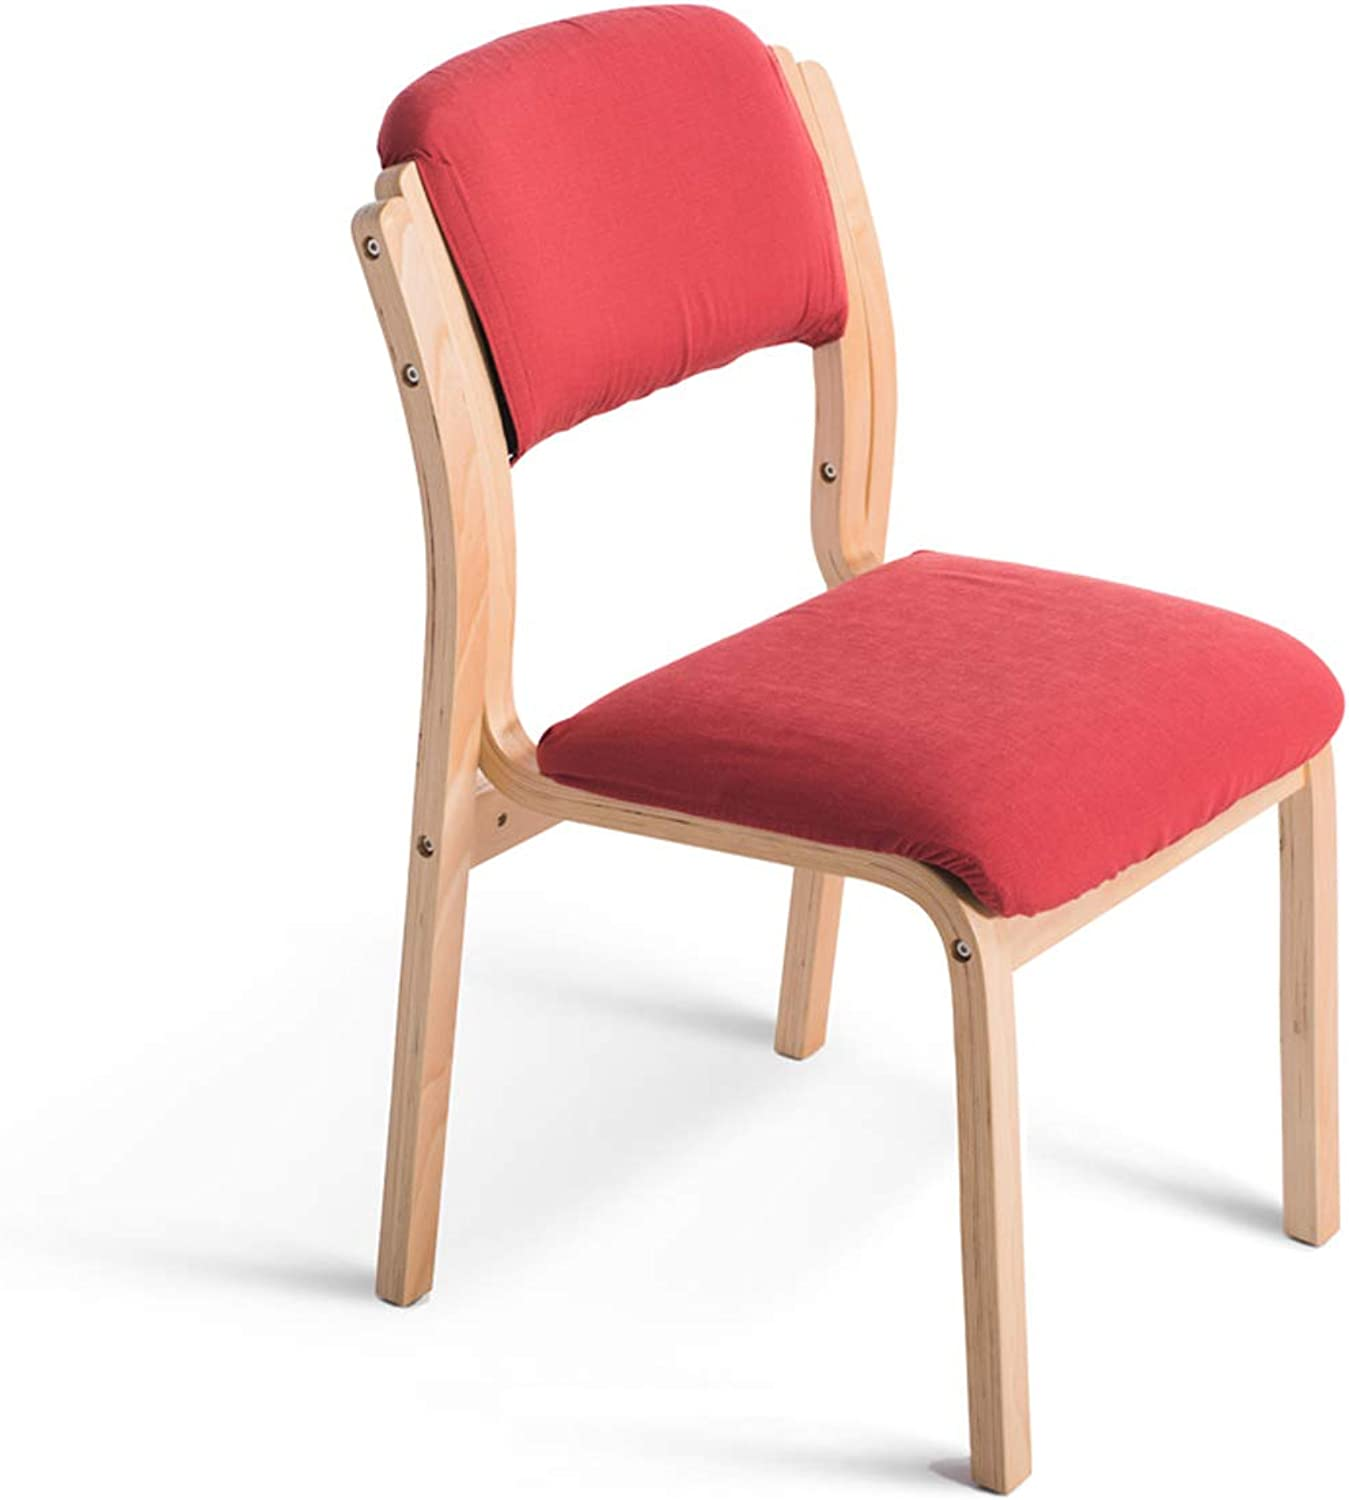 HLQW Solid Wood Dining Chair Cloth Art Cafe Dining Chair Simple Hotel Nordic Soft Bag Chair Backrest European Desk Chair, Red